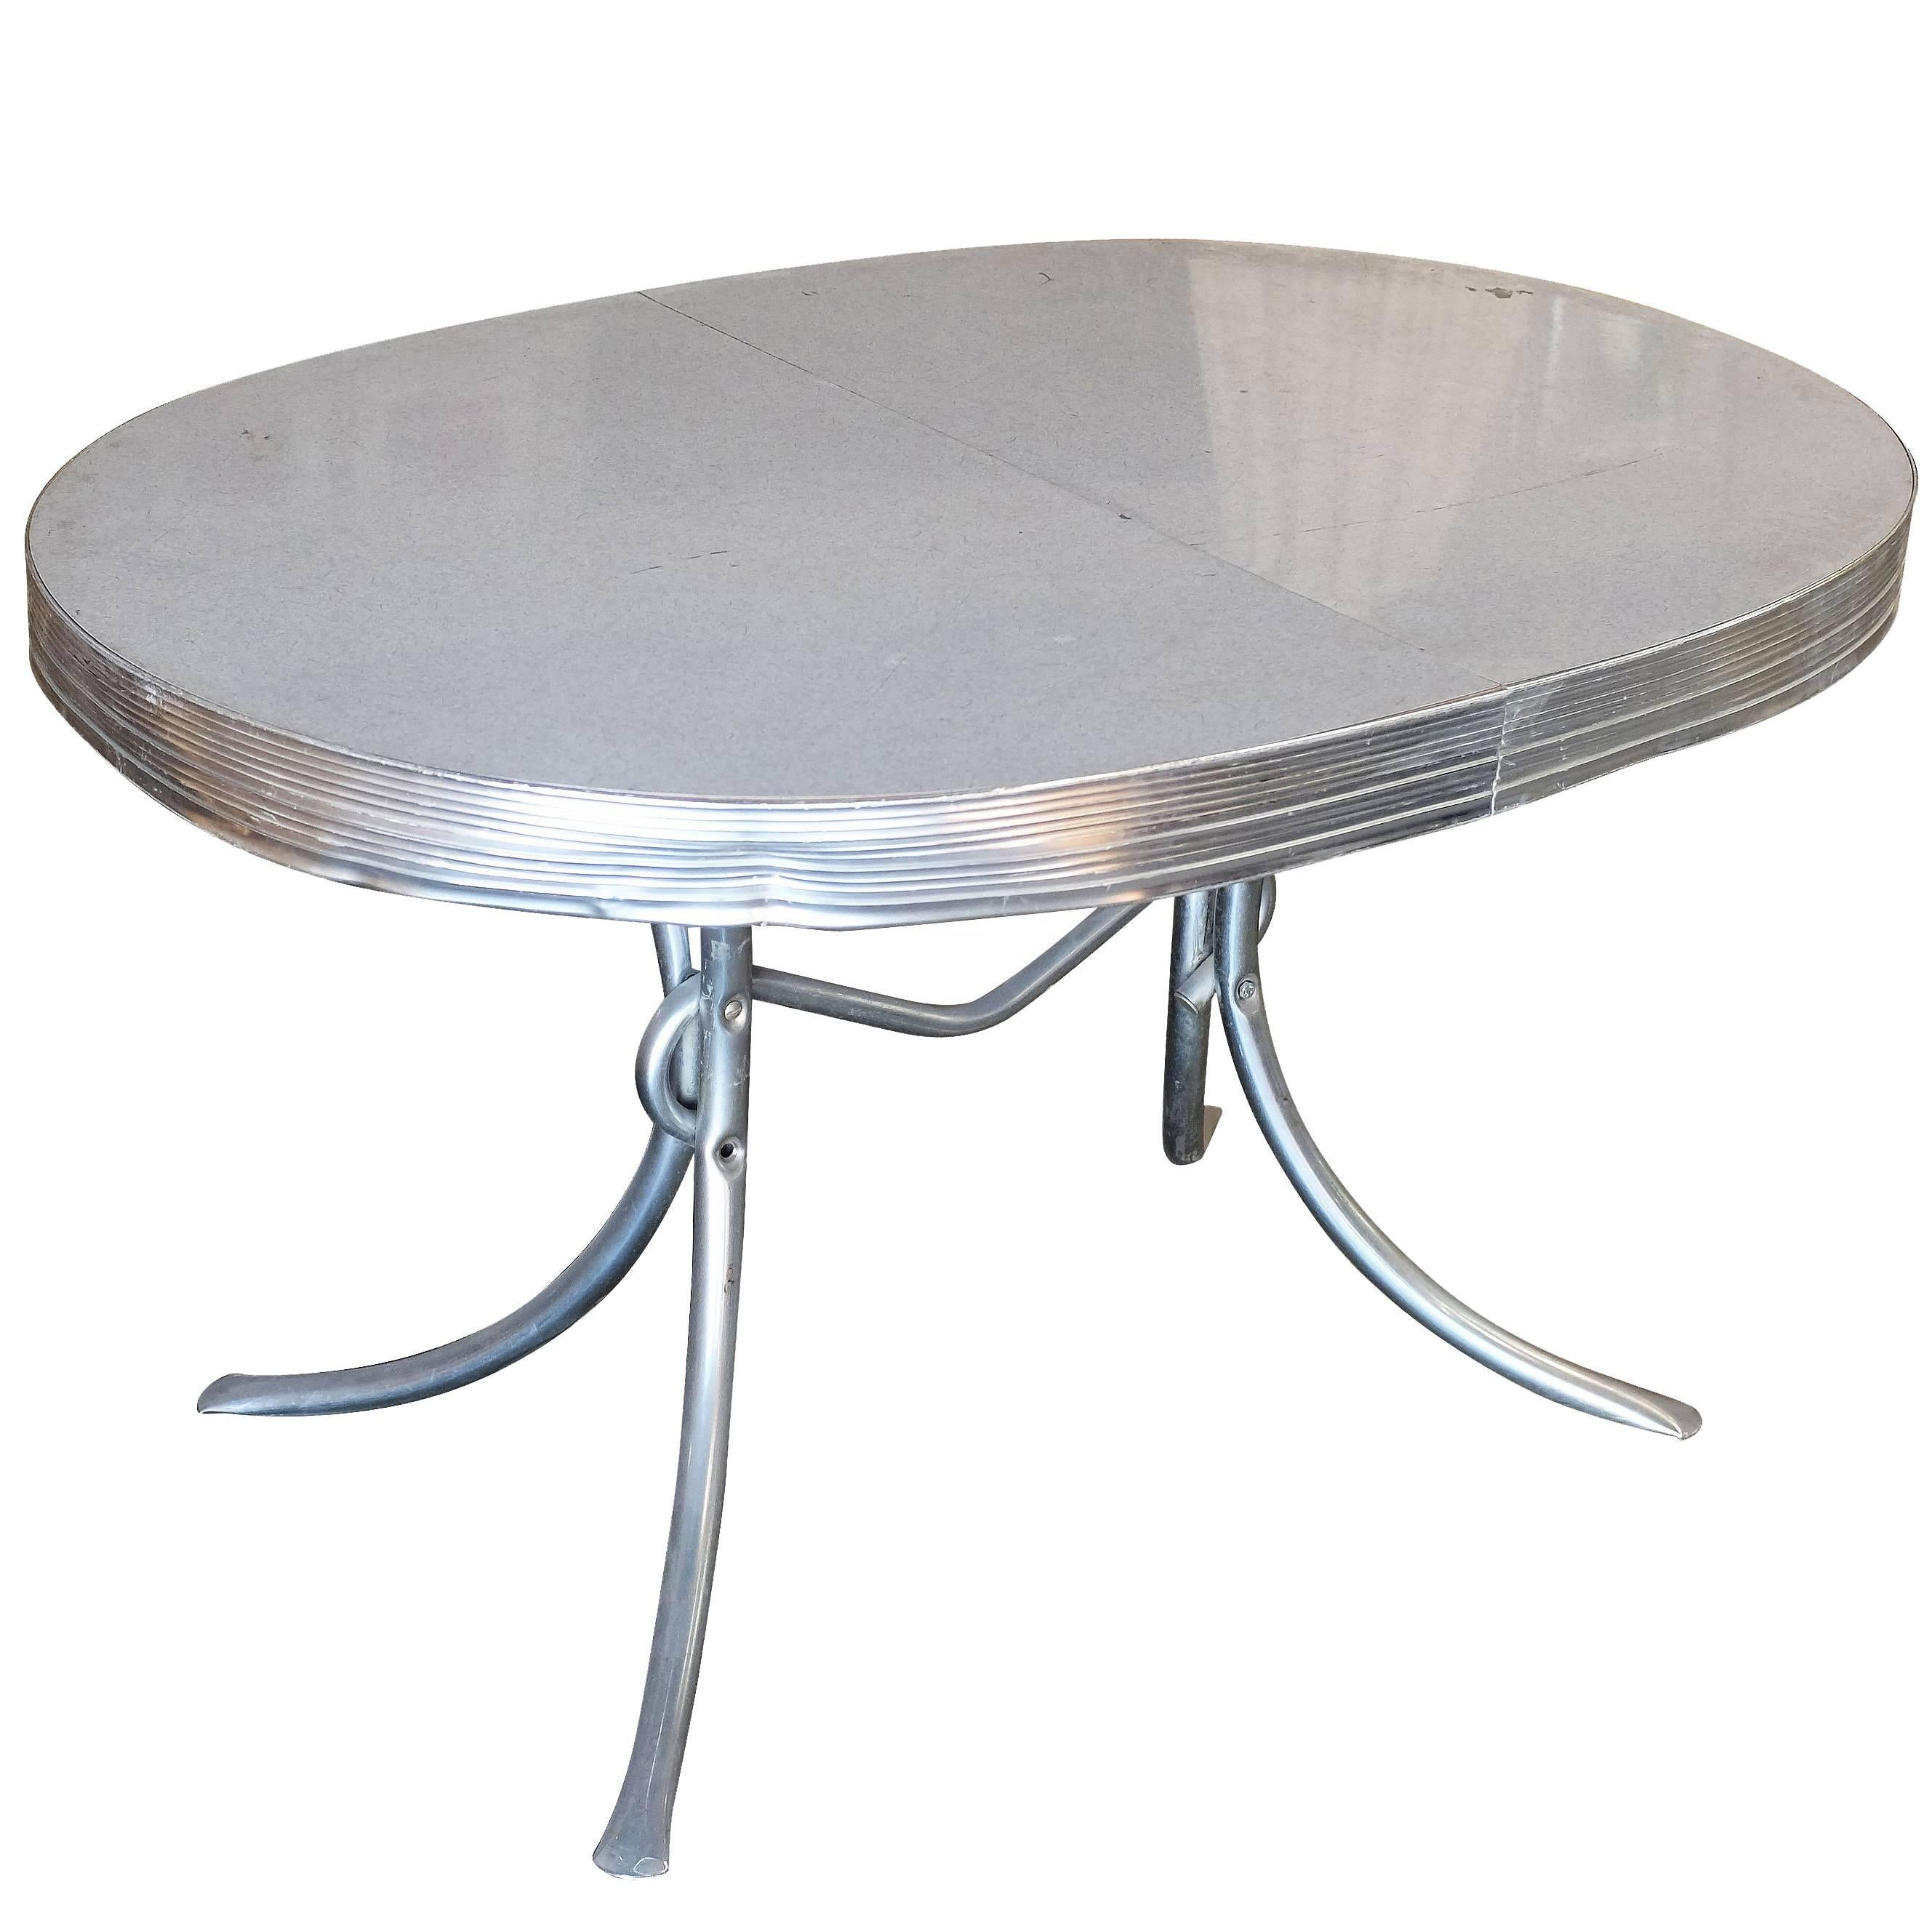 Formica table top image of formica tables on classic with formica table original s formica - Formica top kitchen table ...